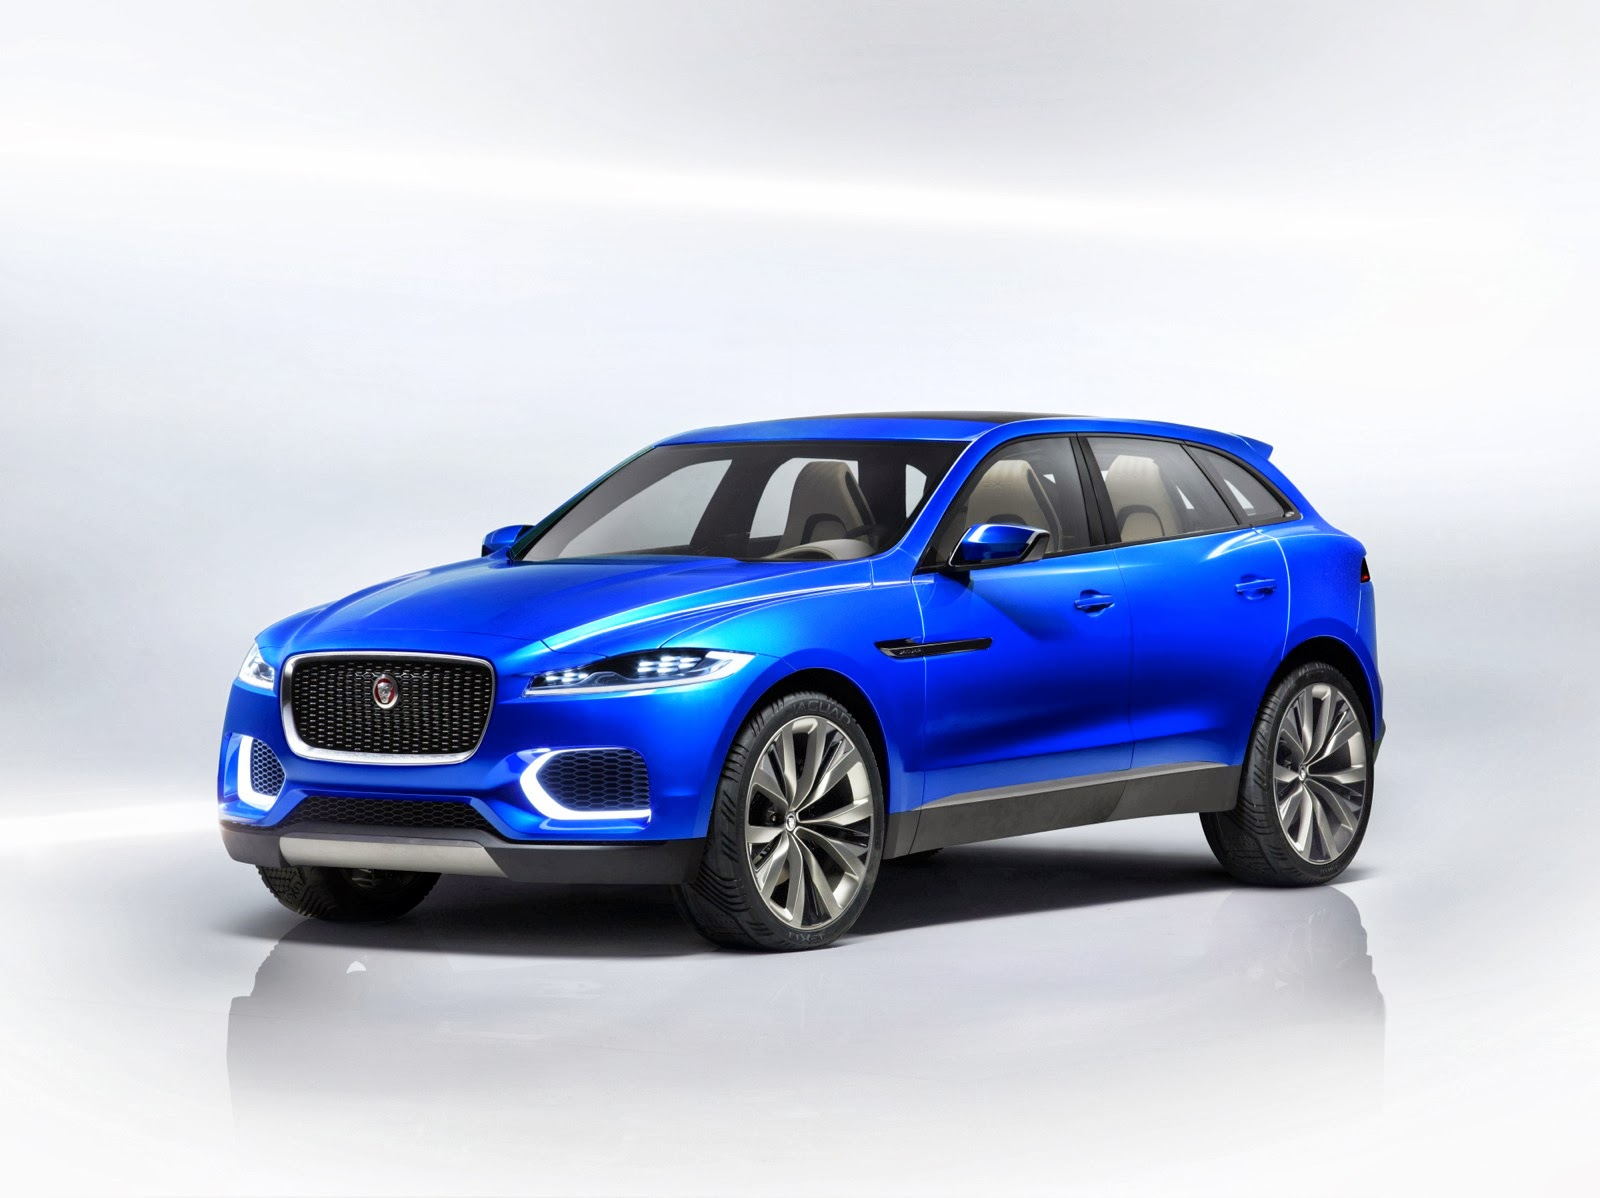 Jaguar C-X17 Concept: An SUV for the Leaping Cat Enthusiast